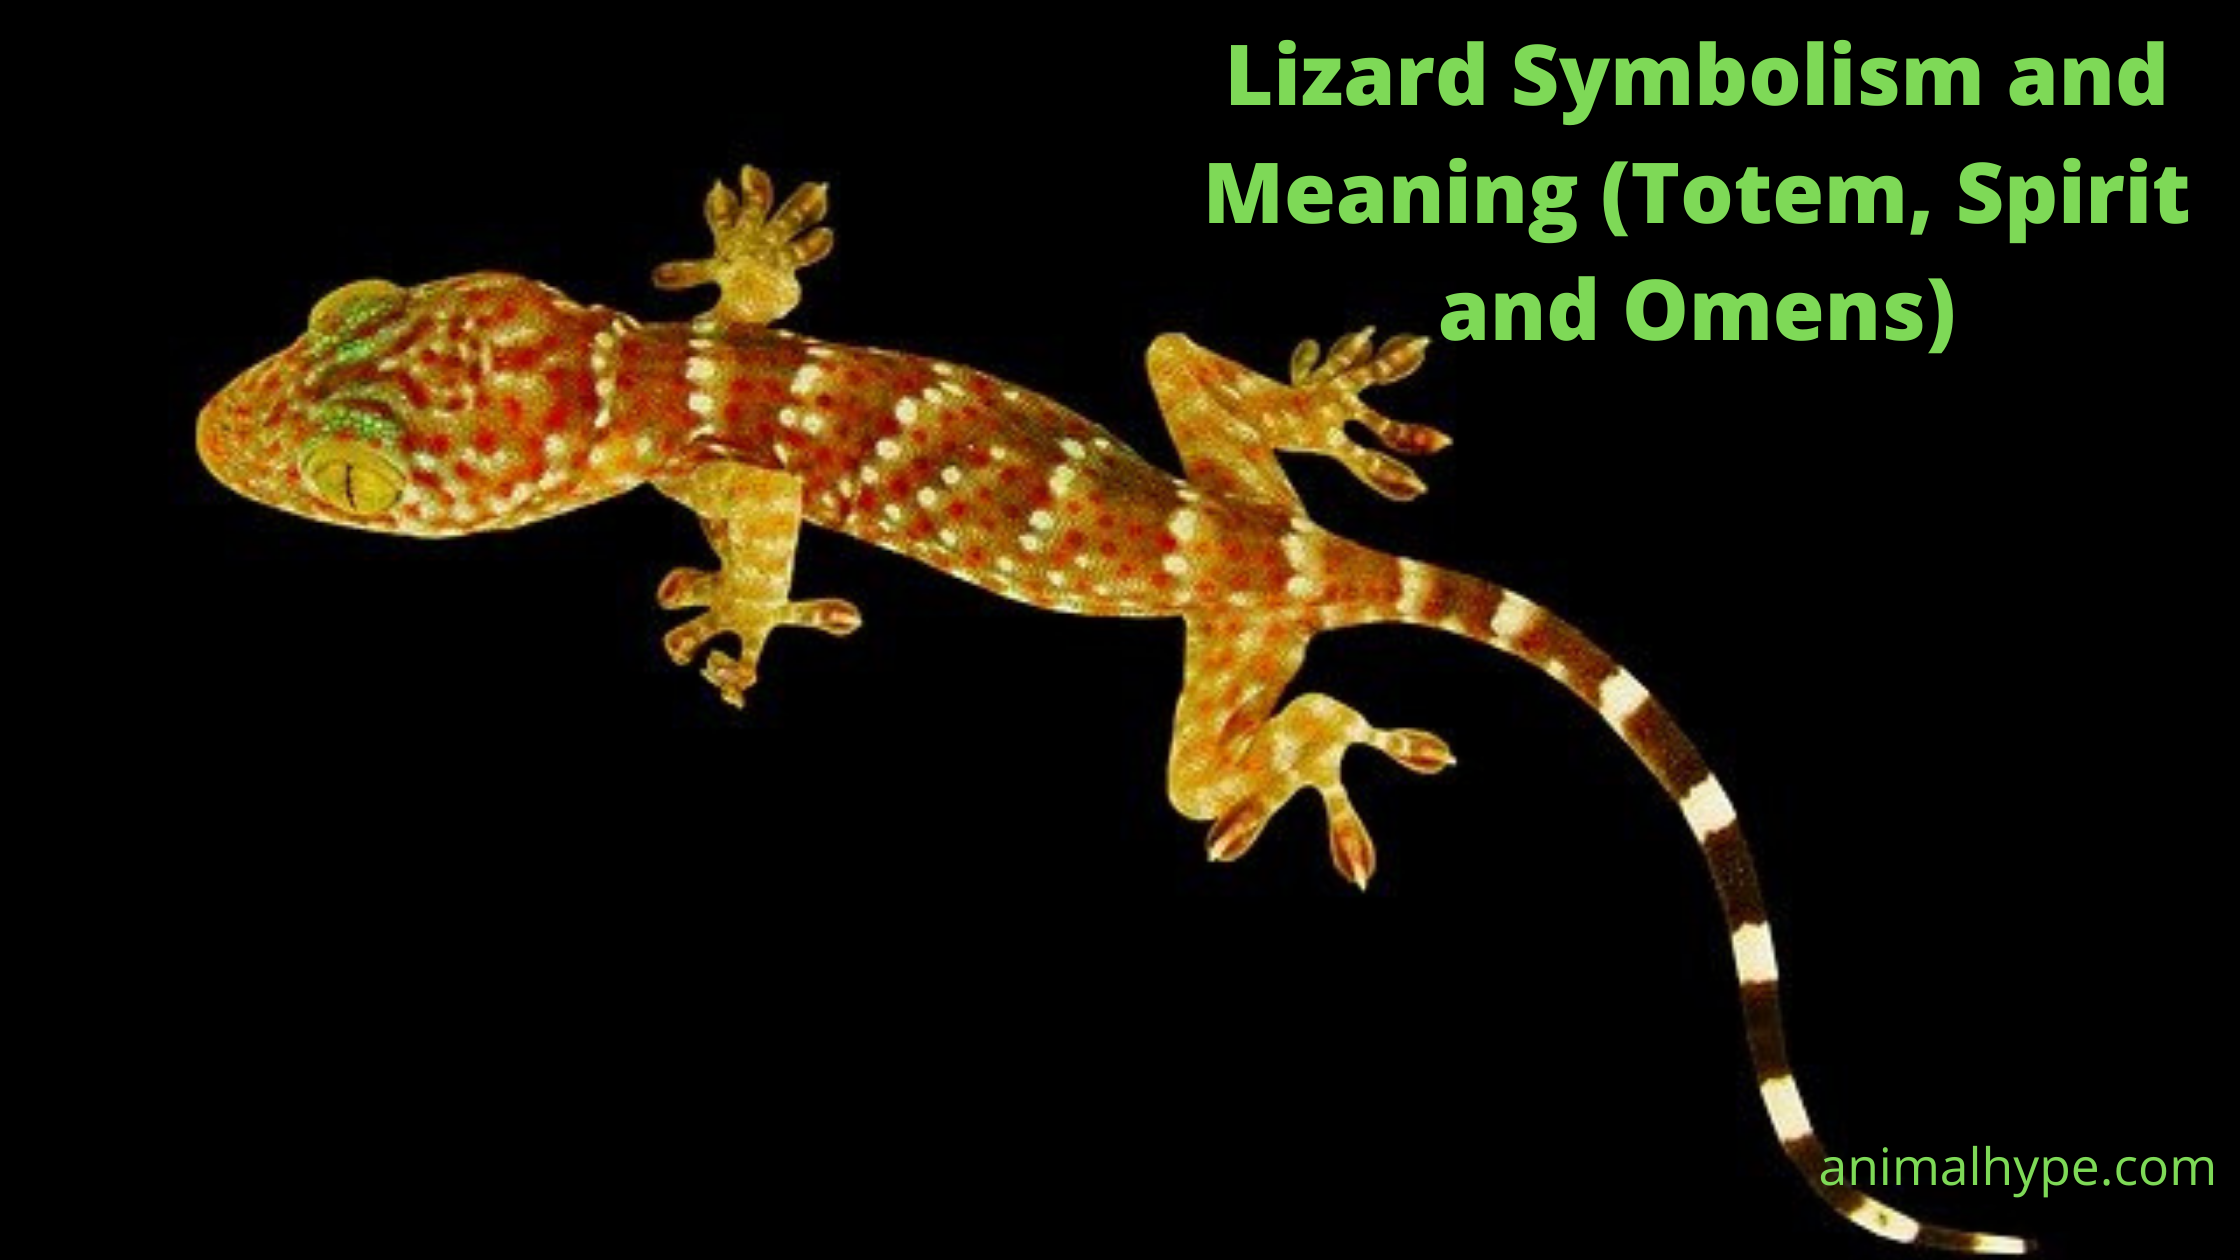 Lizard Symbolism And Meaning (Totem, Spirit and Omens)